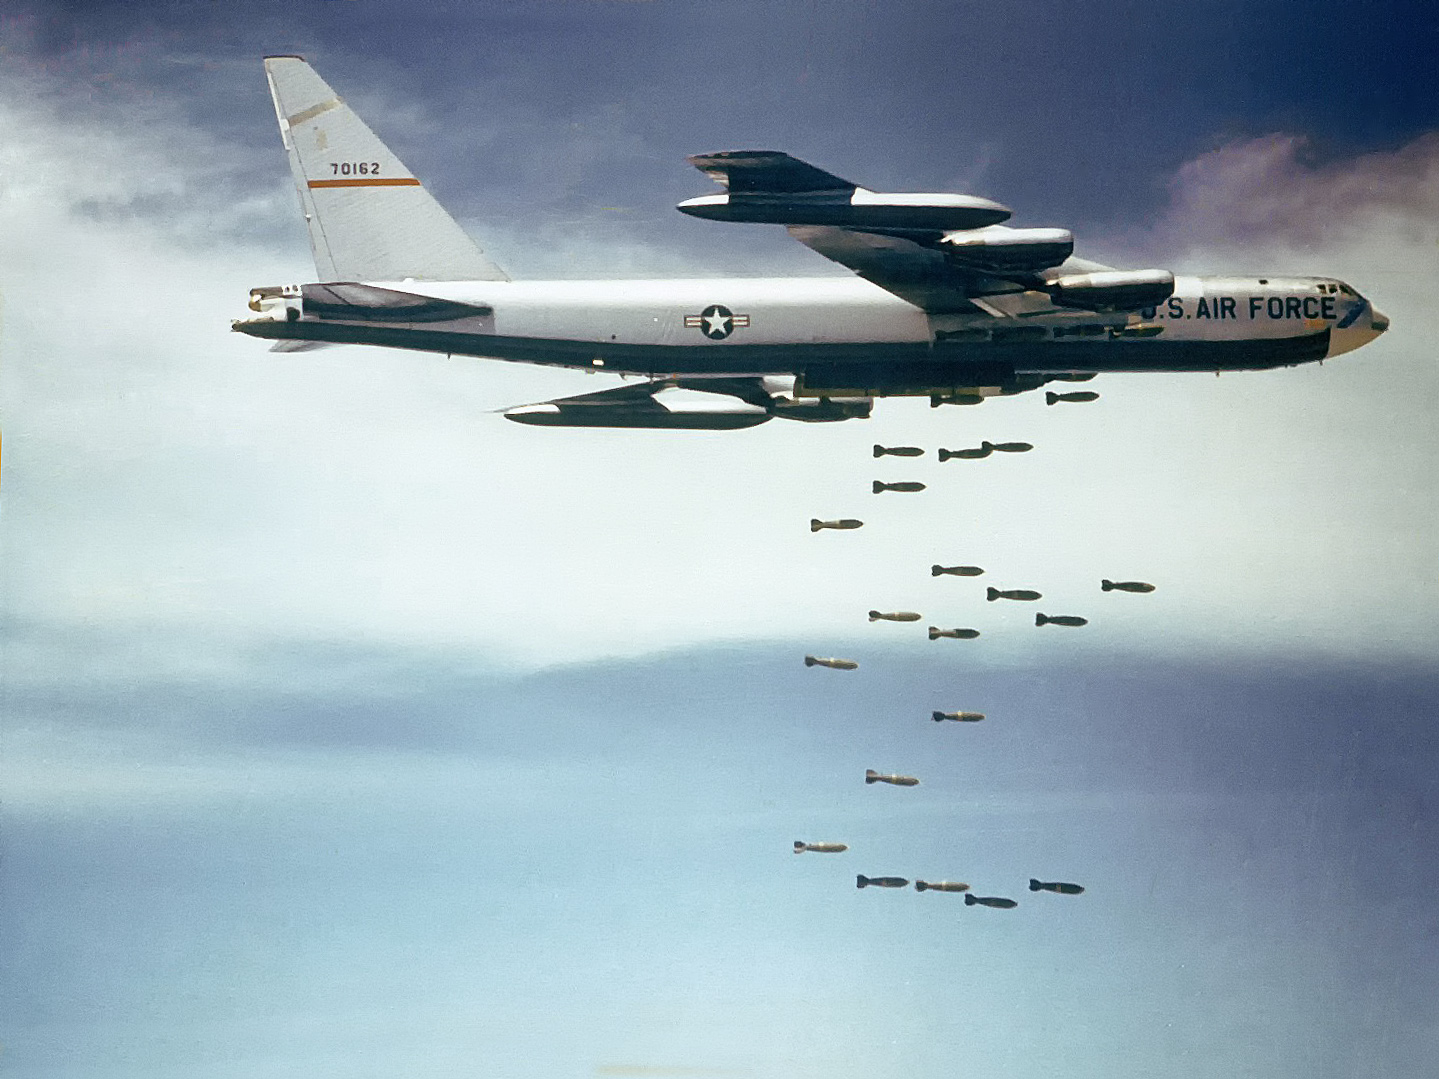 https://i1.wp.com/upload.wikimedia.org/wikipedia/commons/c/c3/Boeing_B-52_dropping_bombs.jpg